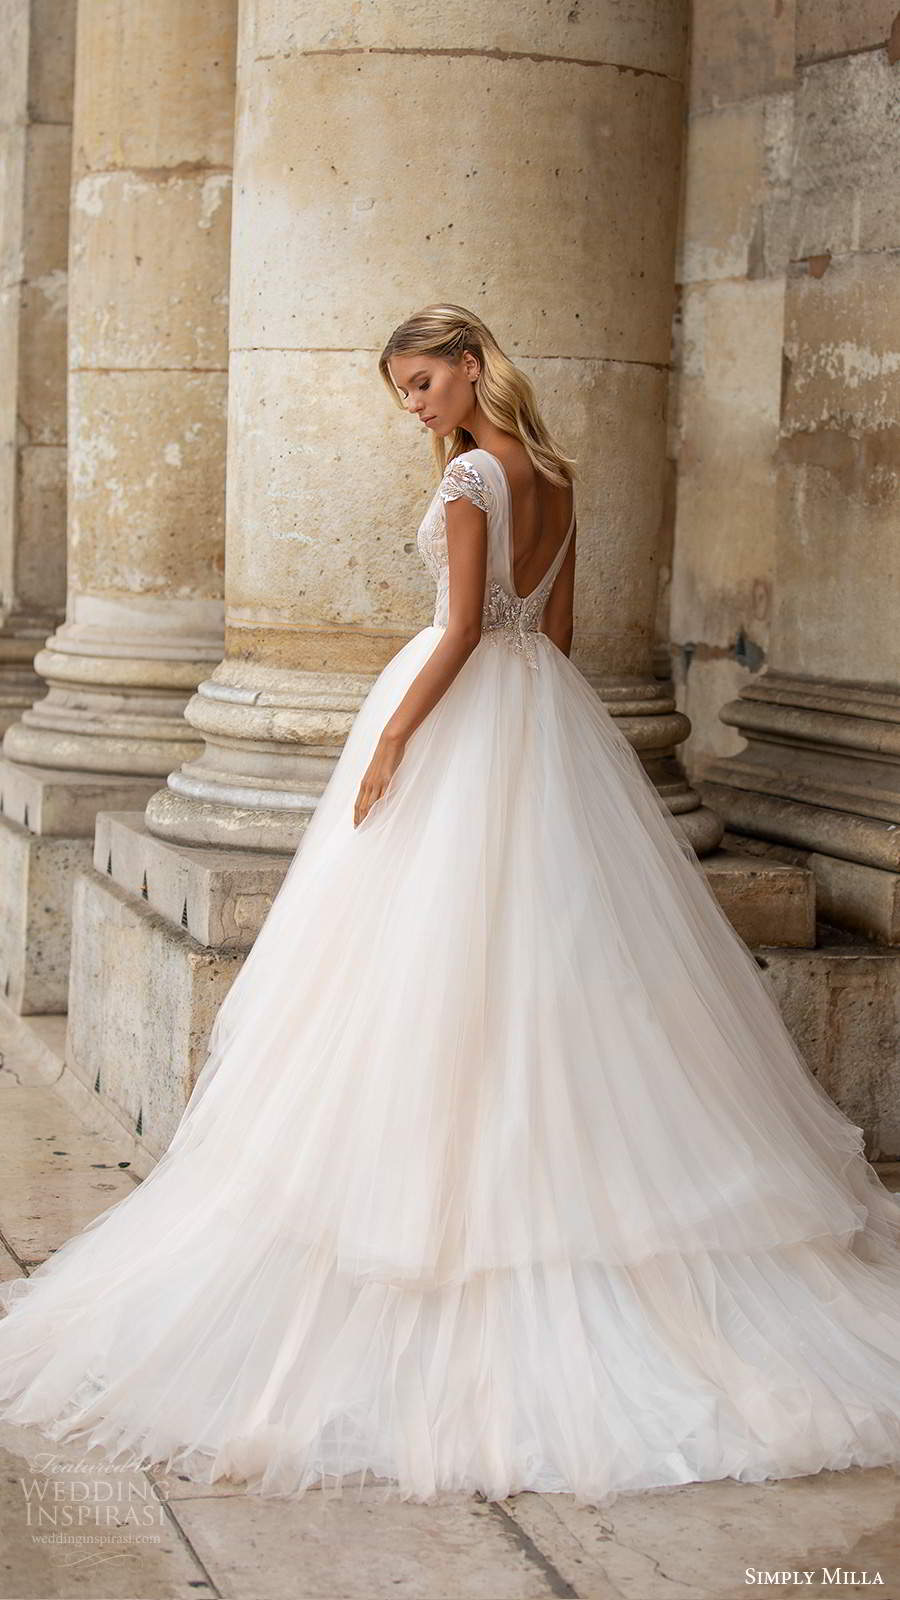 simply milla nova 2020 bridal cap sleeves plunging v neckline embellished bodice a line ball gown blush wedding dress chapel train scoop back (3) bv